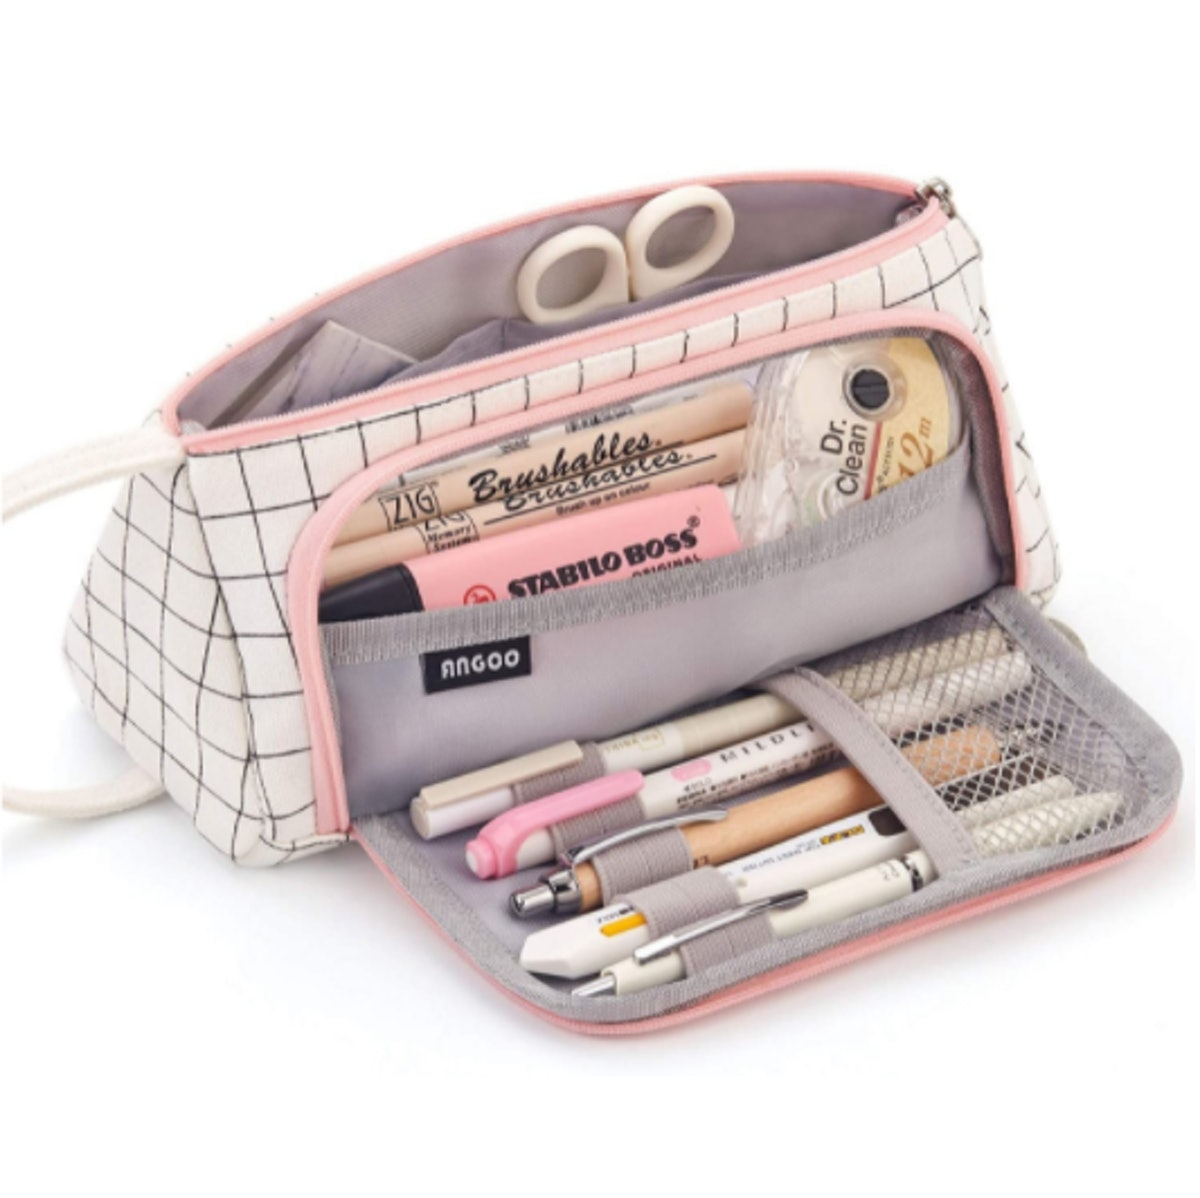 EASTHILL Stationary Pouch